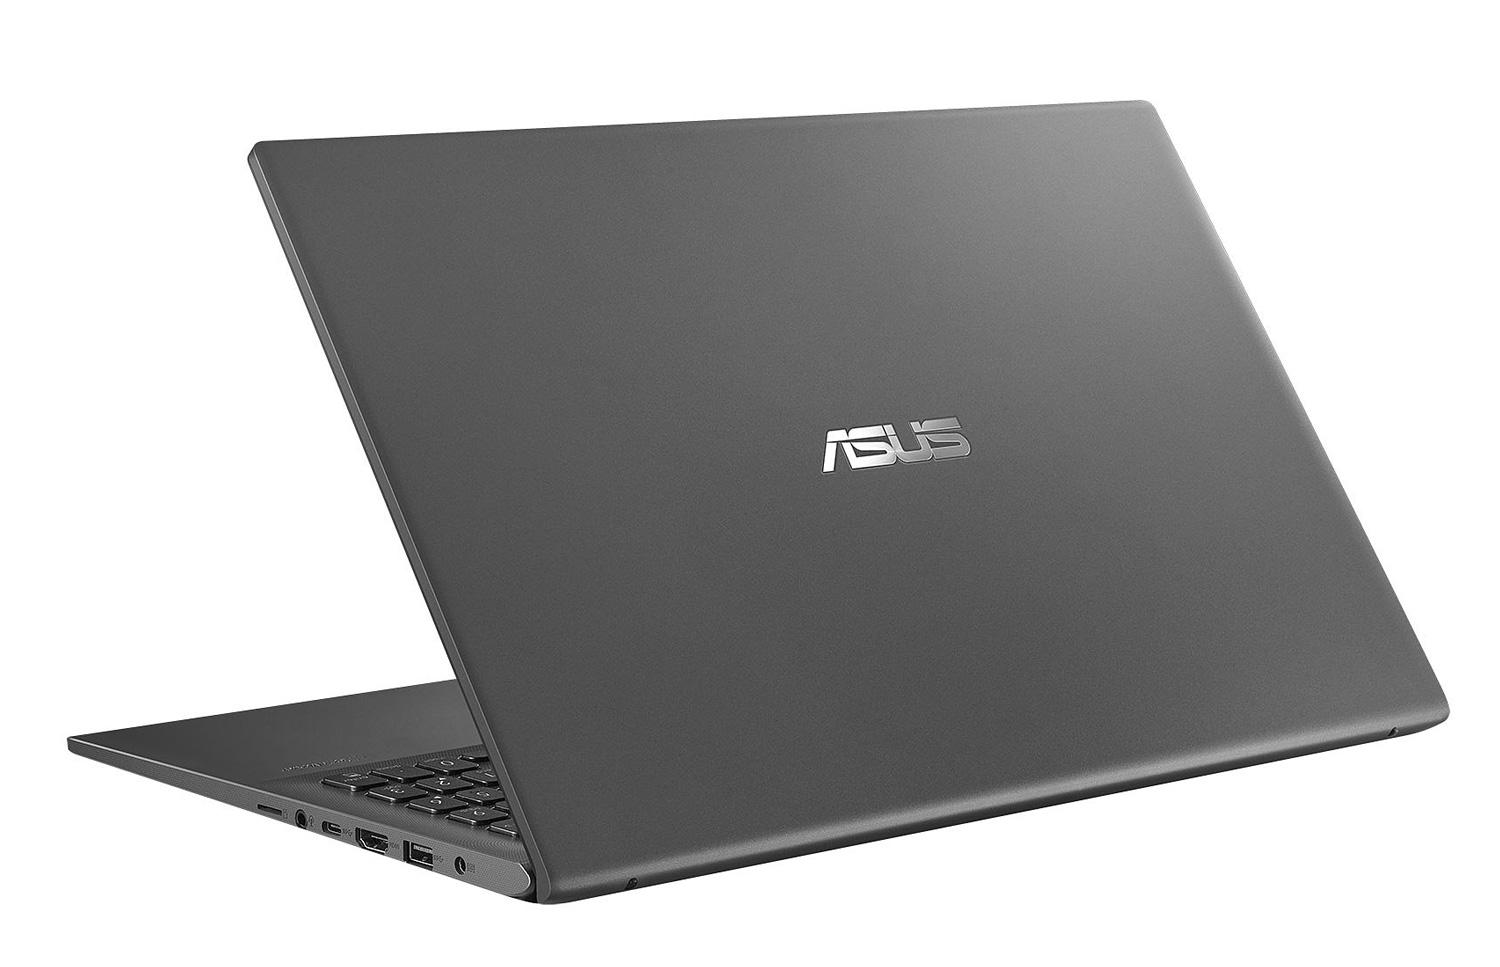 Ordinateur portable Asus P1504FA-EJ281R Gris - SSD, Pro - photo 3